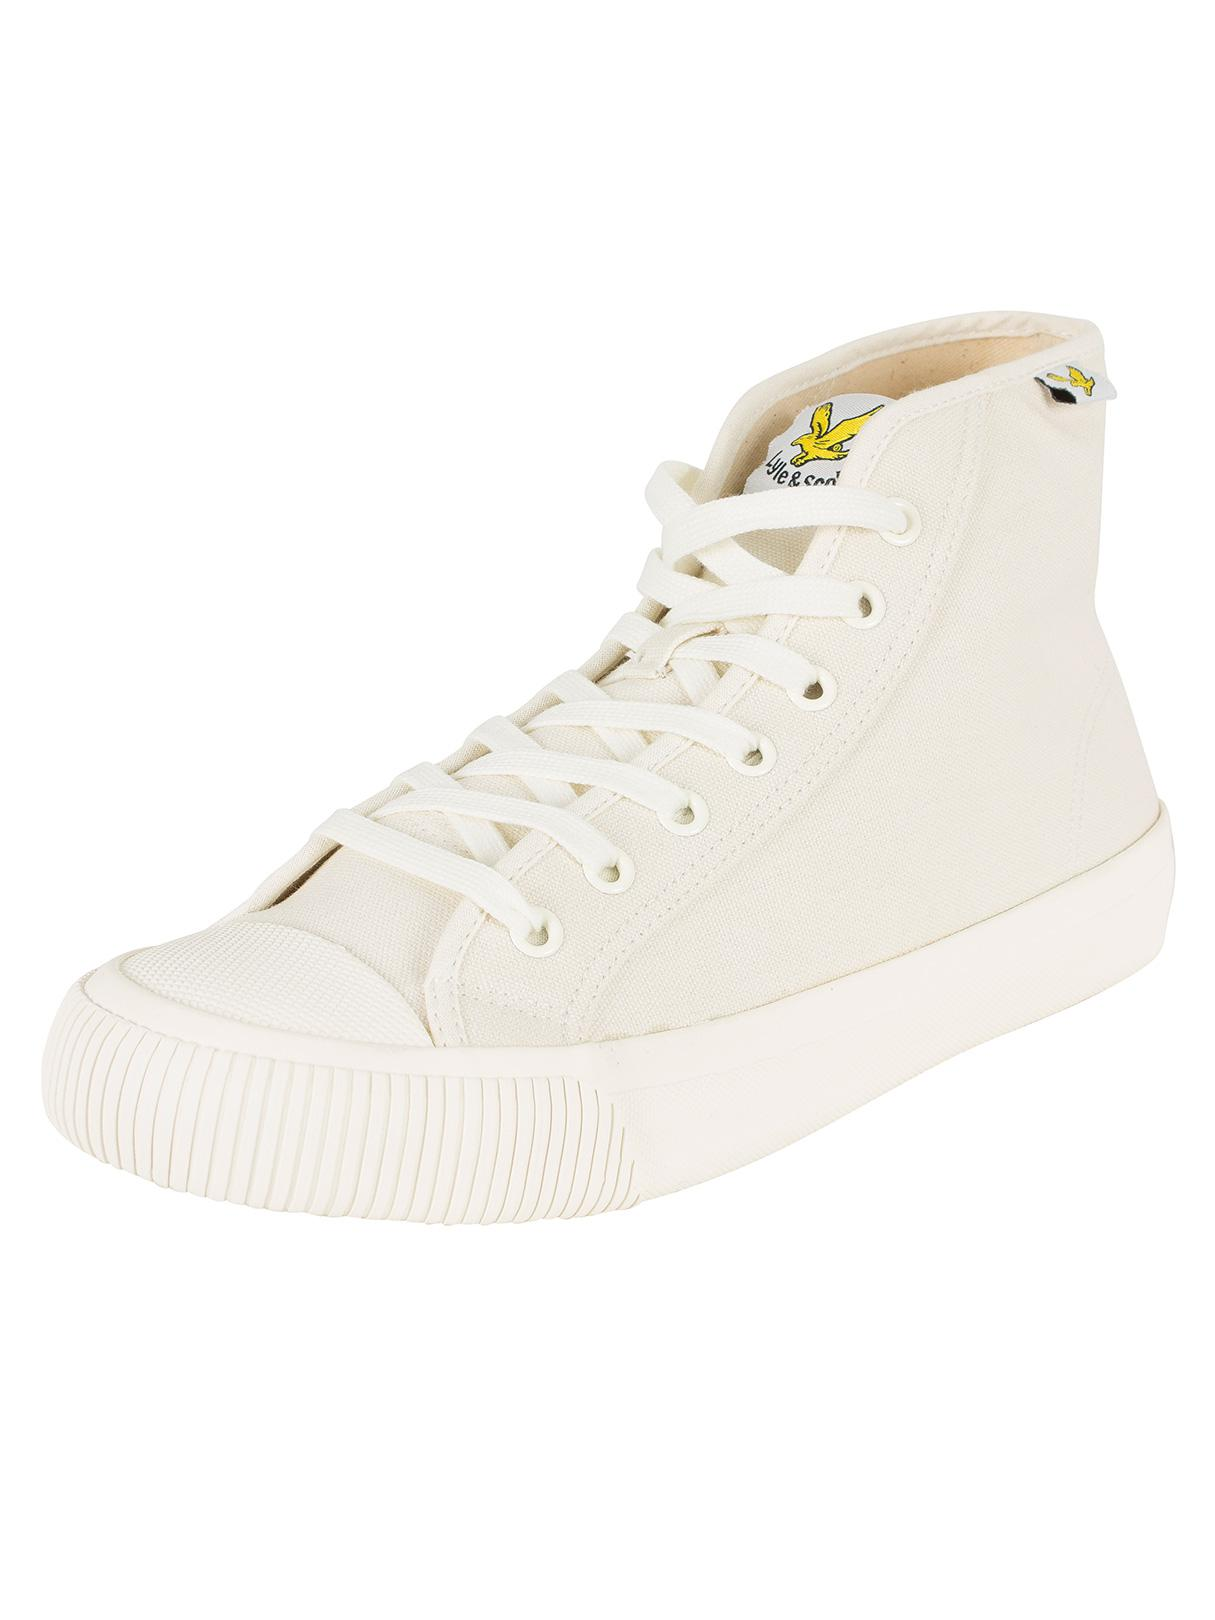 Men's Luggie Hi Canvas Trainers White